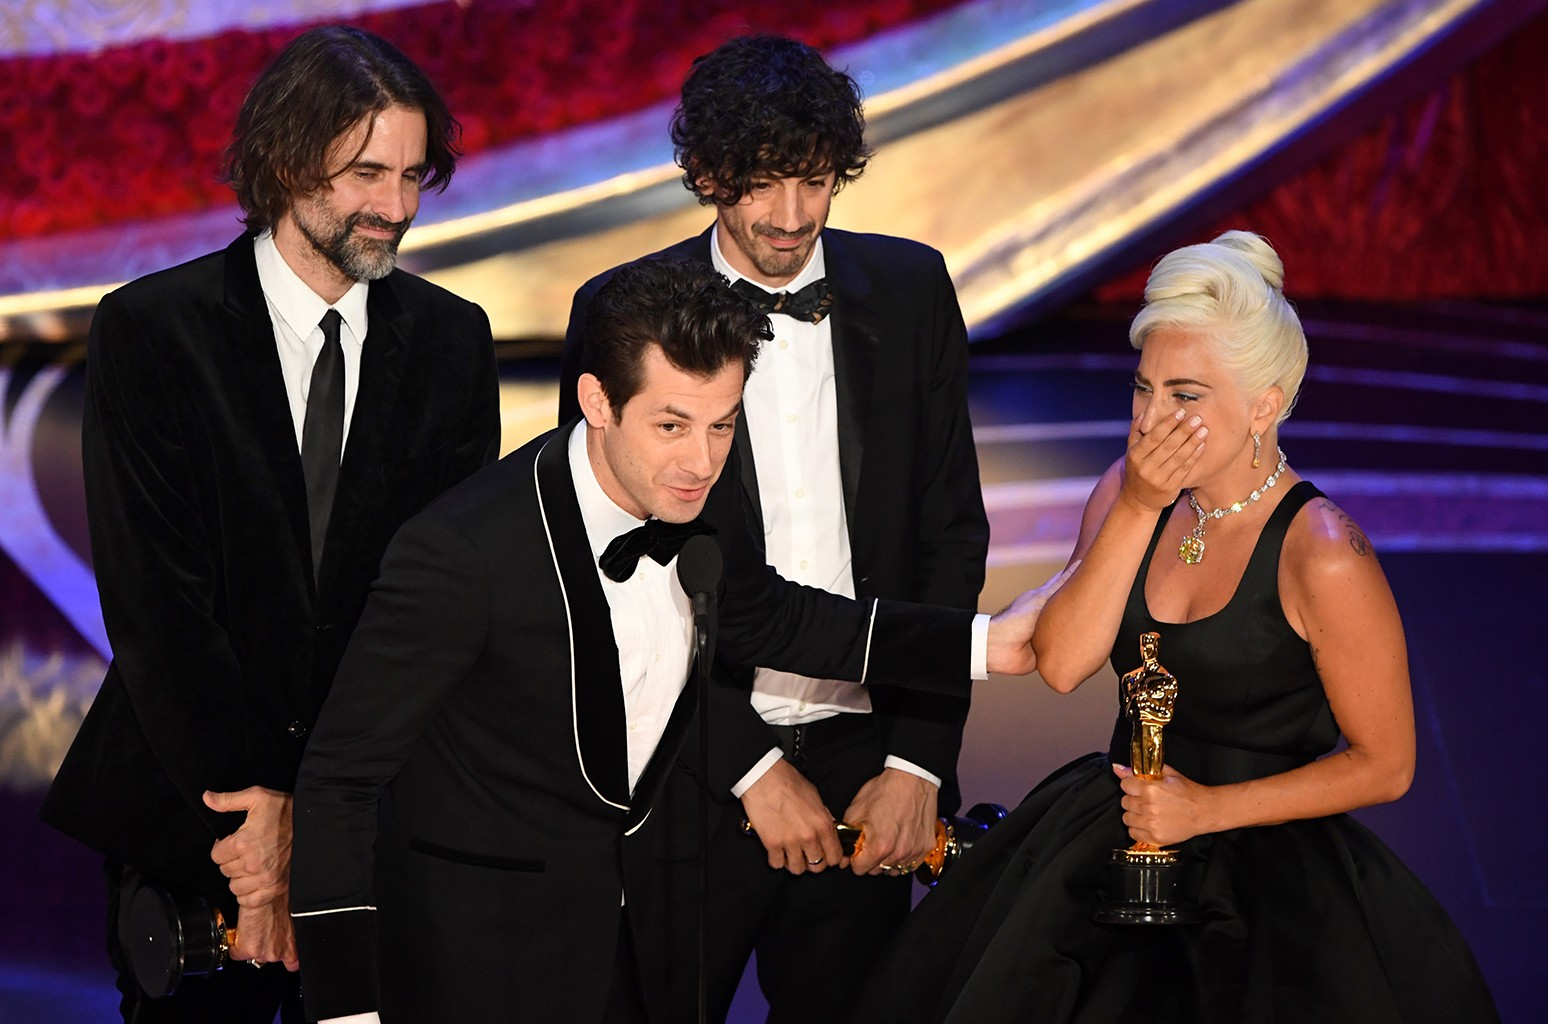 """Best Original Song nominees for """"Shallow"""" from """"A Star is Born"""" Lady Gaga, Mark Ronson, Anthony Rossomando and Andrew Wyatt accept the award for Best Original Song during the 91st Annual Academy Awards at the Dolby Theatre in Hollywood on Feb. 24, 2019."""